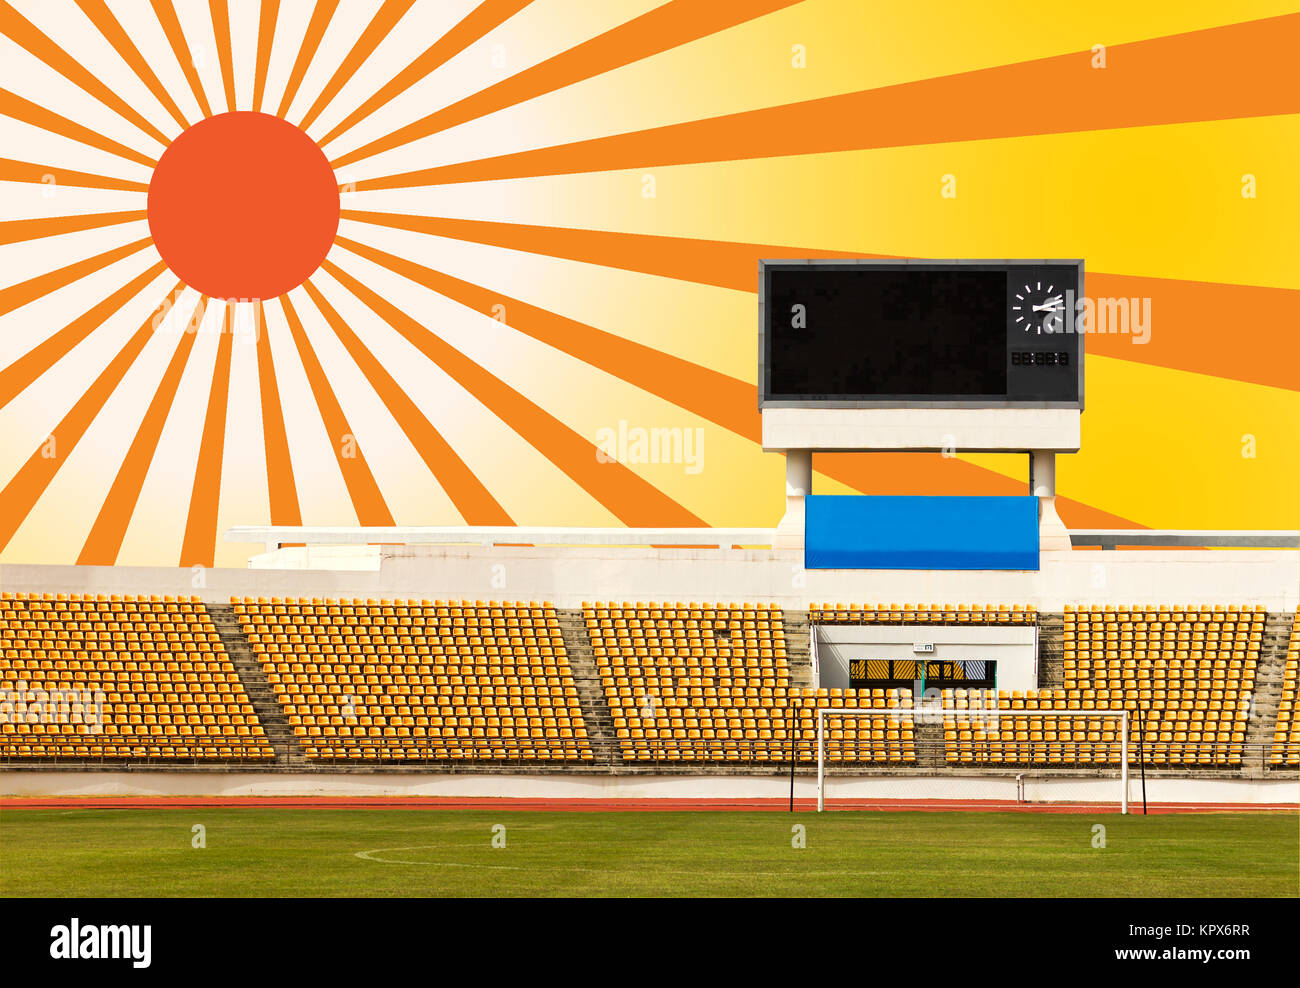 Stadium with scoreboard and sun ray - Stock Image